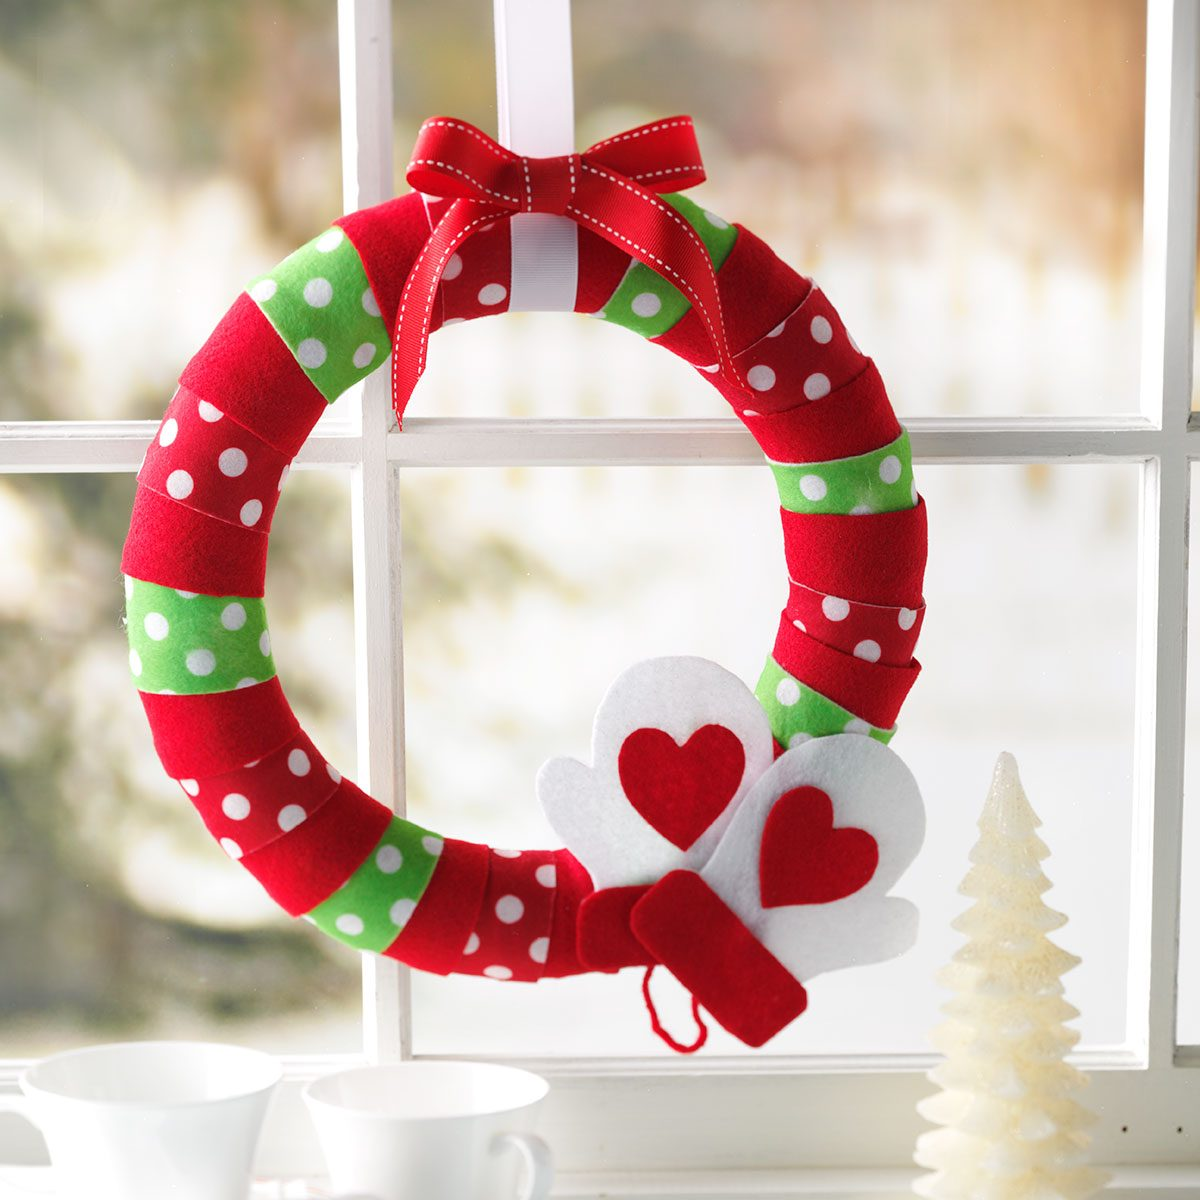 35cm Kaemink Make Your OWN Floral//Christmas Wreath Blank Straw Wreath//Ring for Christmas Crafts